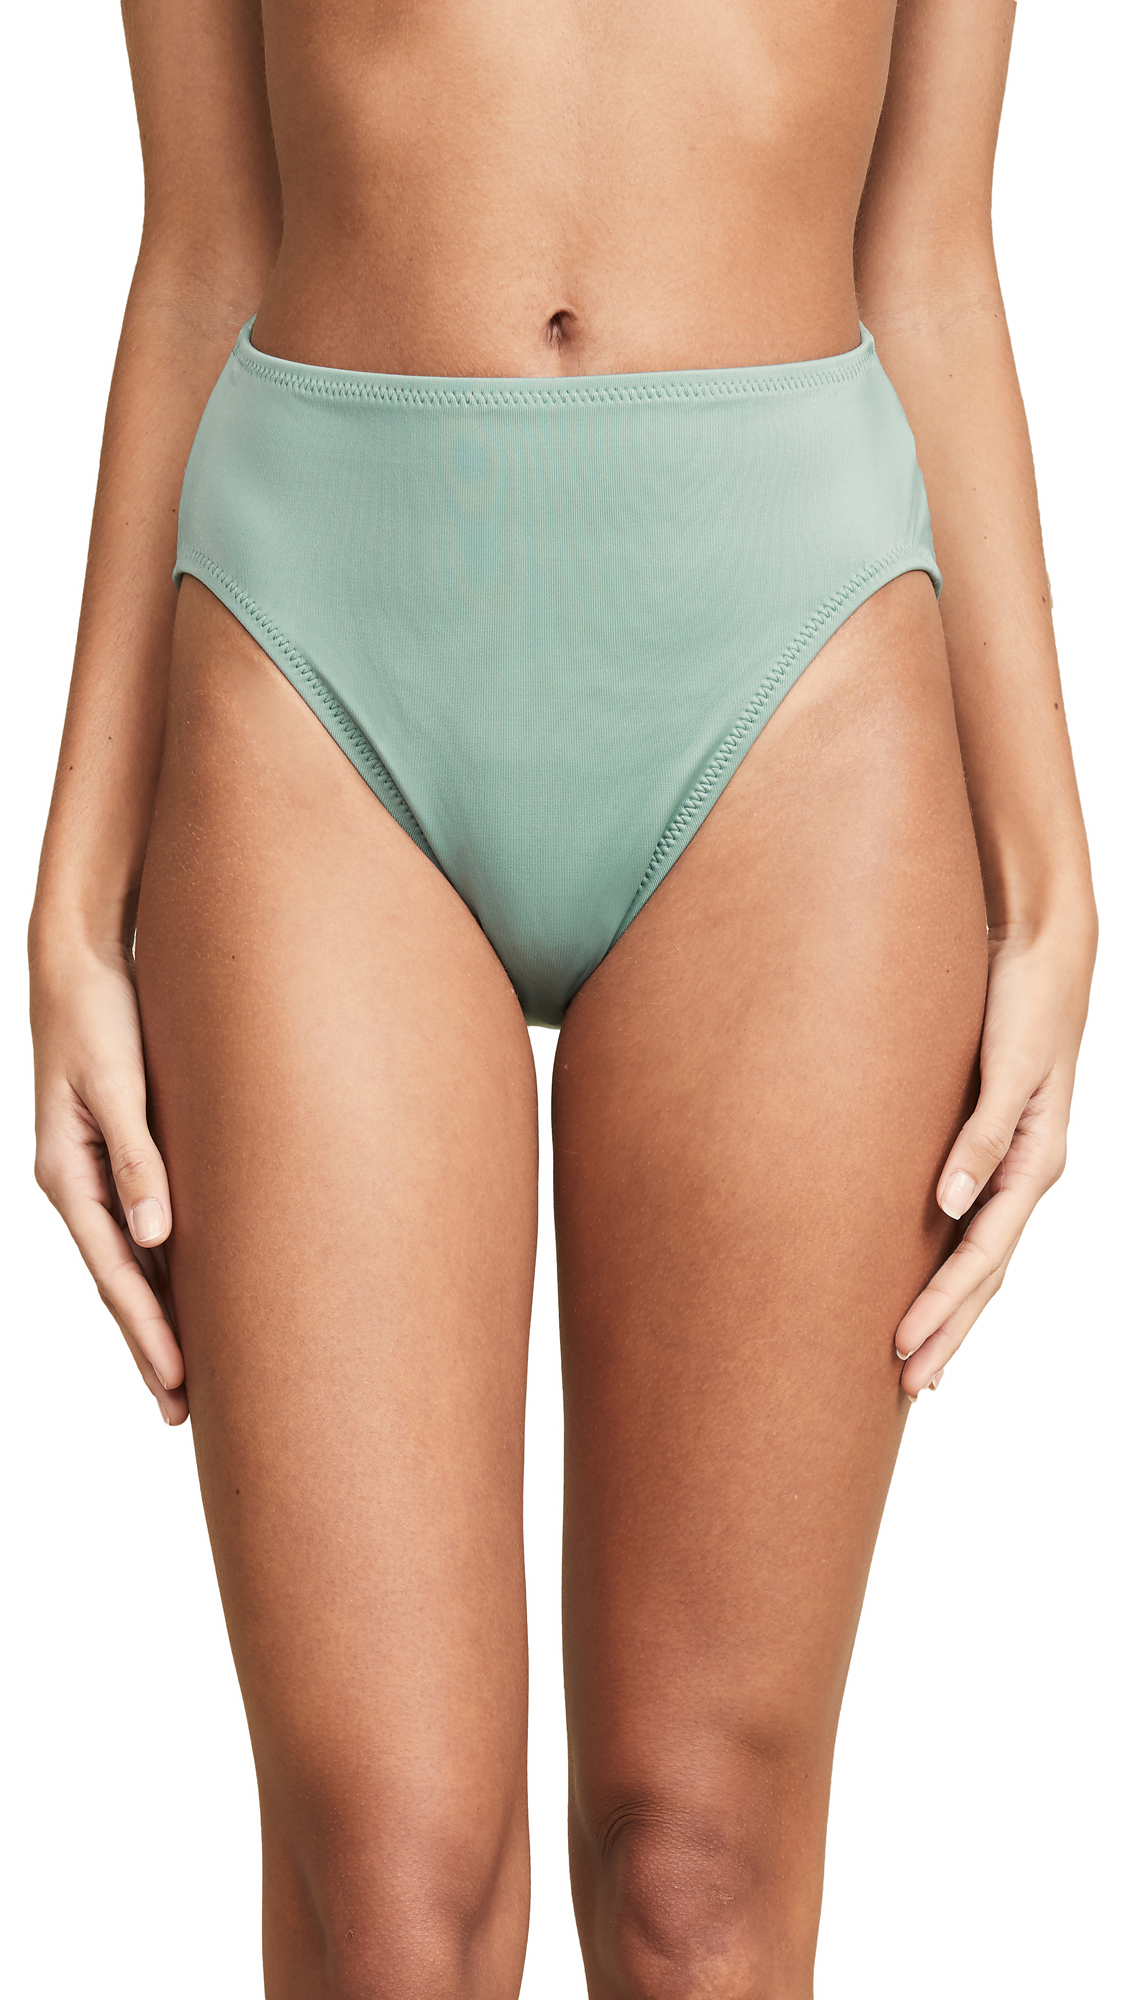 Norma Kamali Underwire Bottoms - Moss